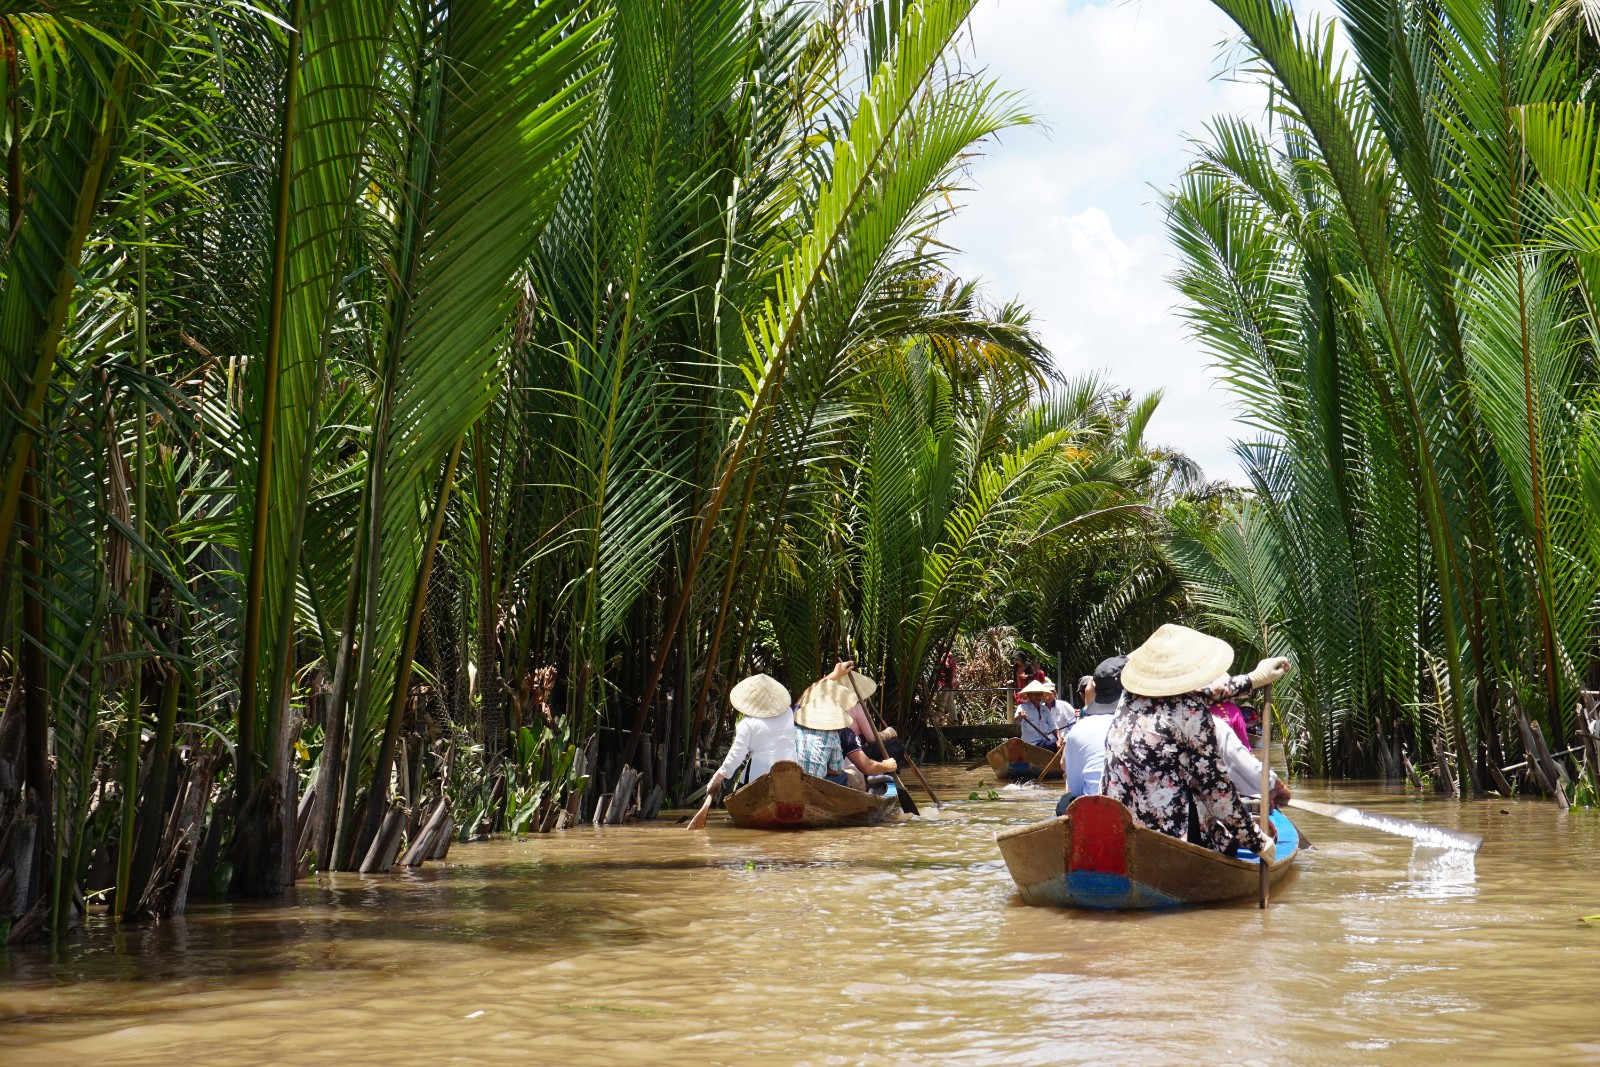 Floating down the Mekong River, Vietnam in traditional canoes. boldlygotravel.com